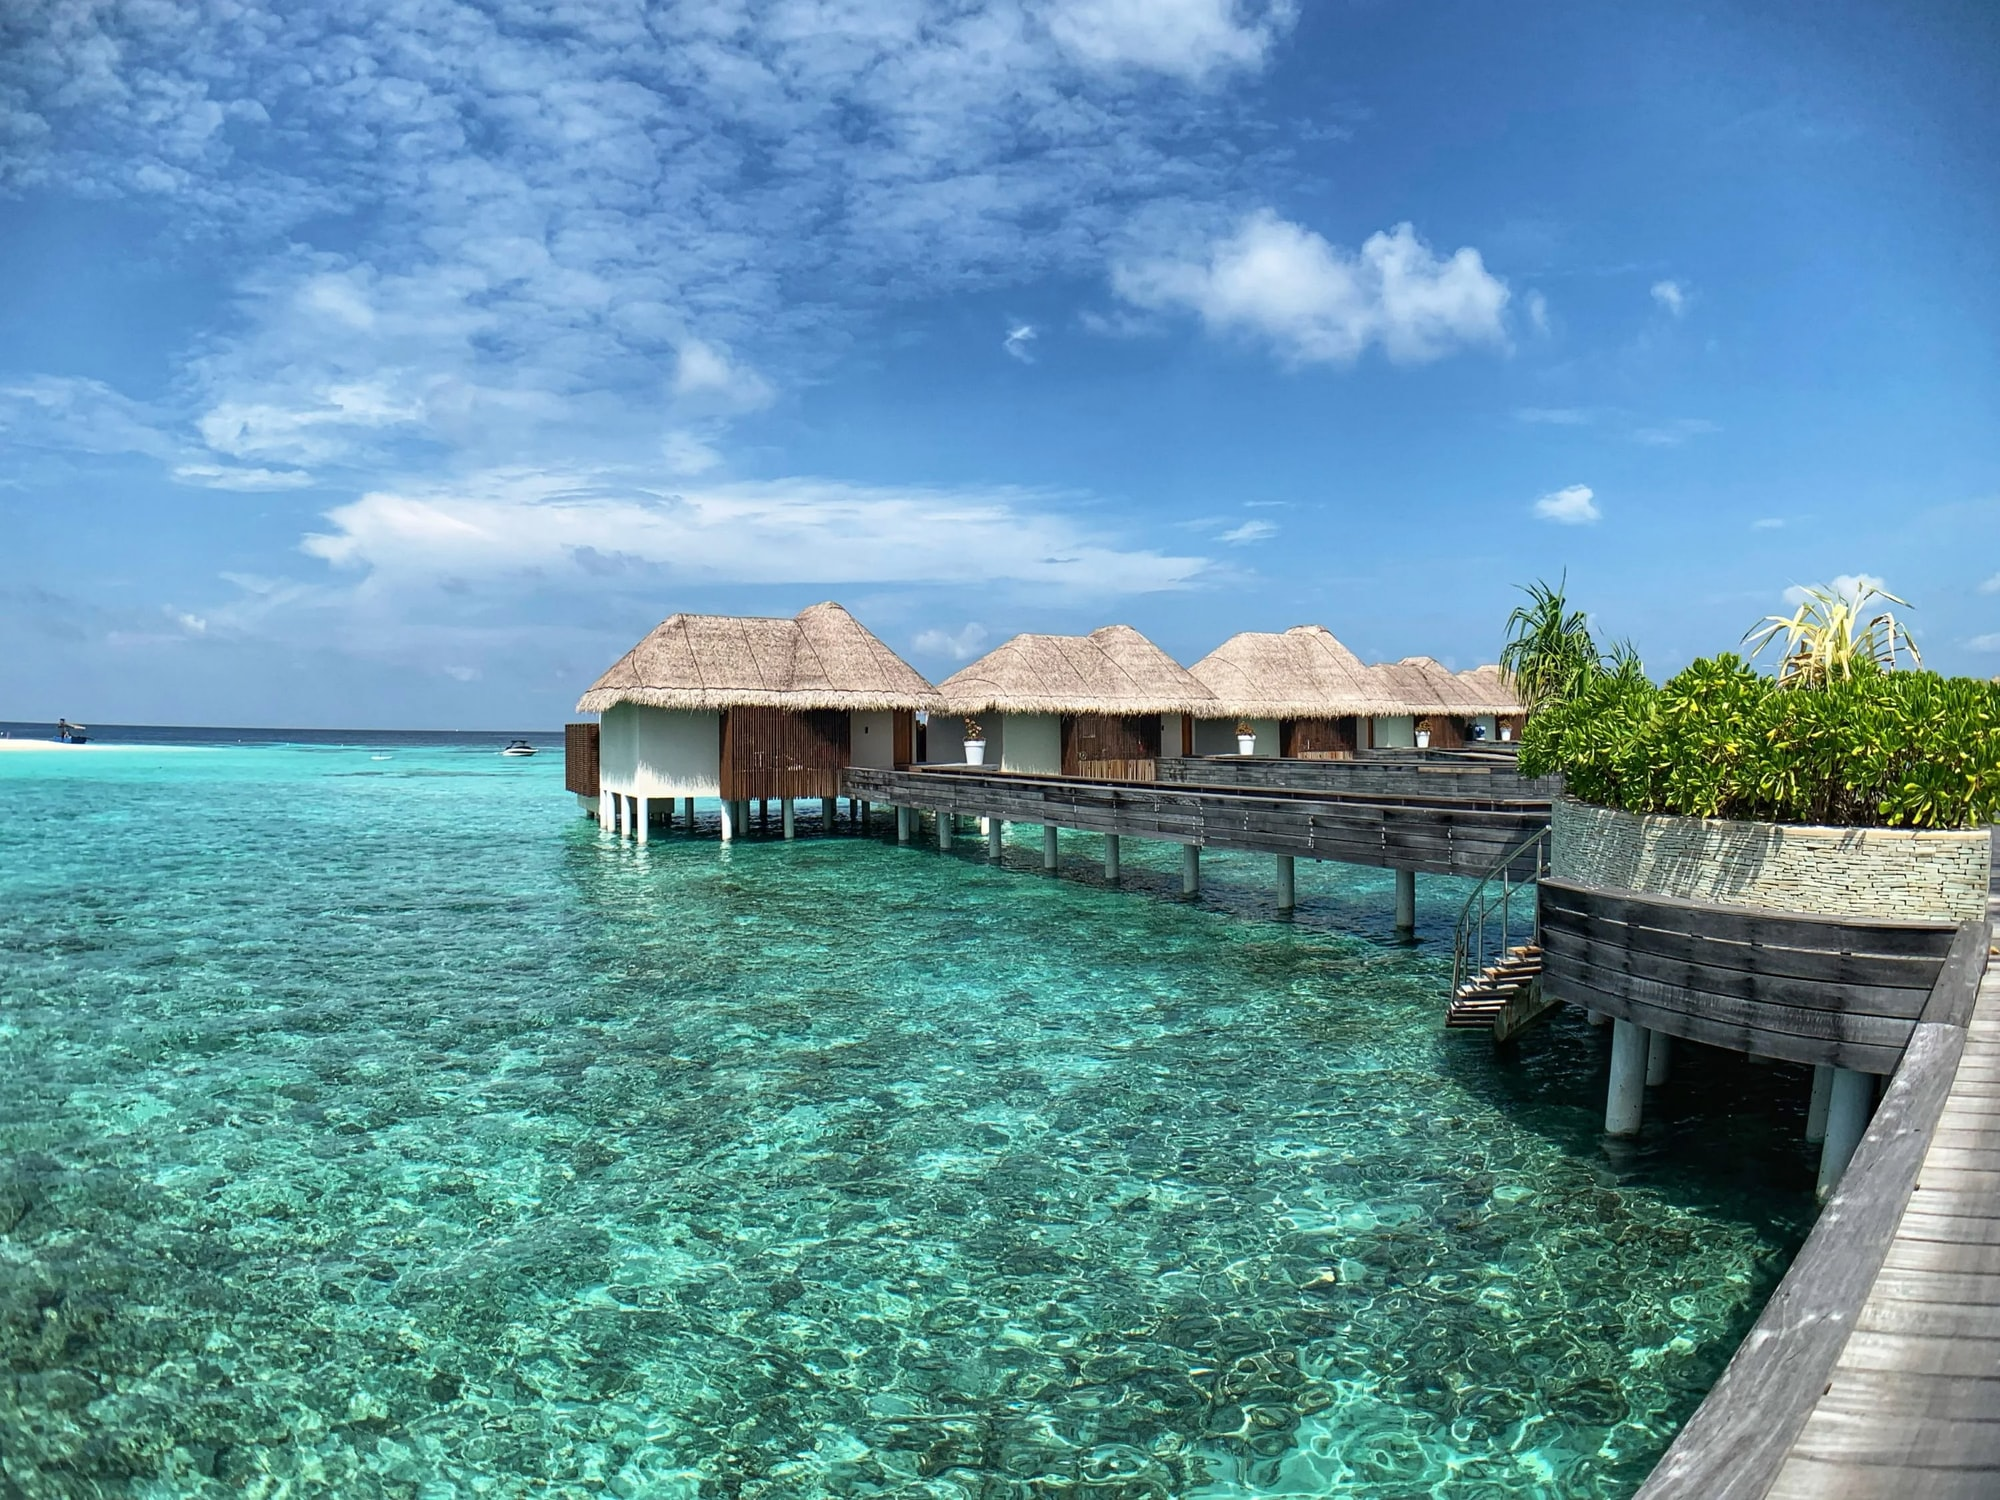 Overwater Villa at the W Hotel luxury resort in the Maldives.